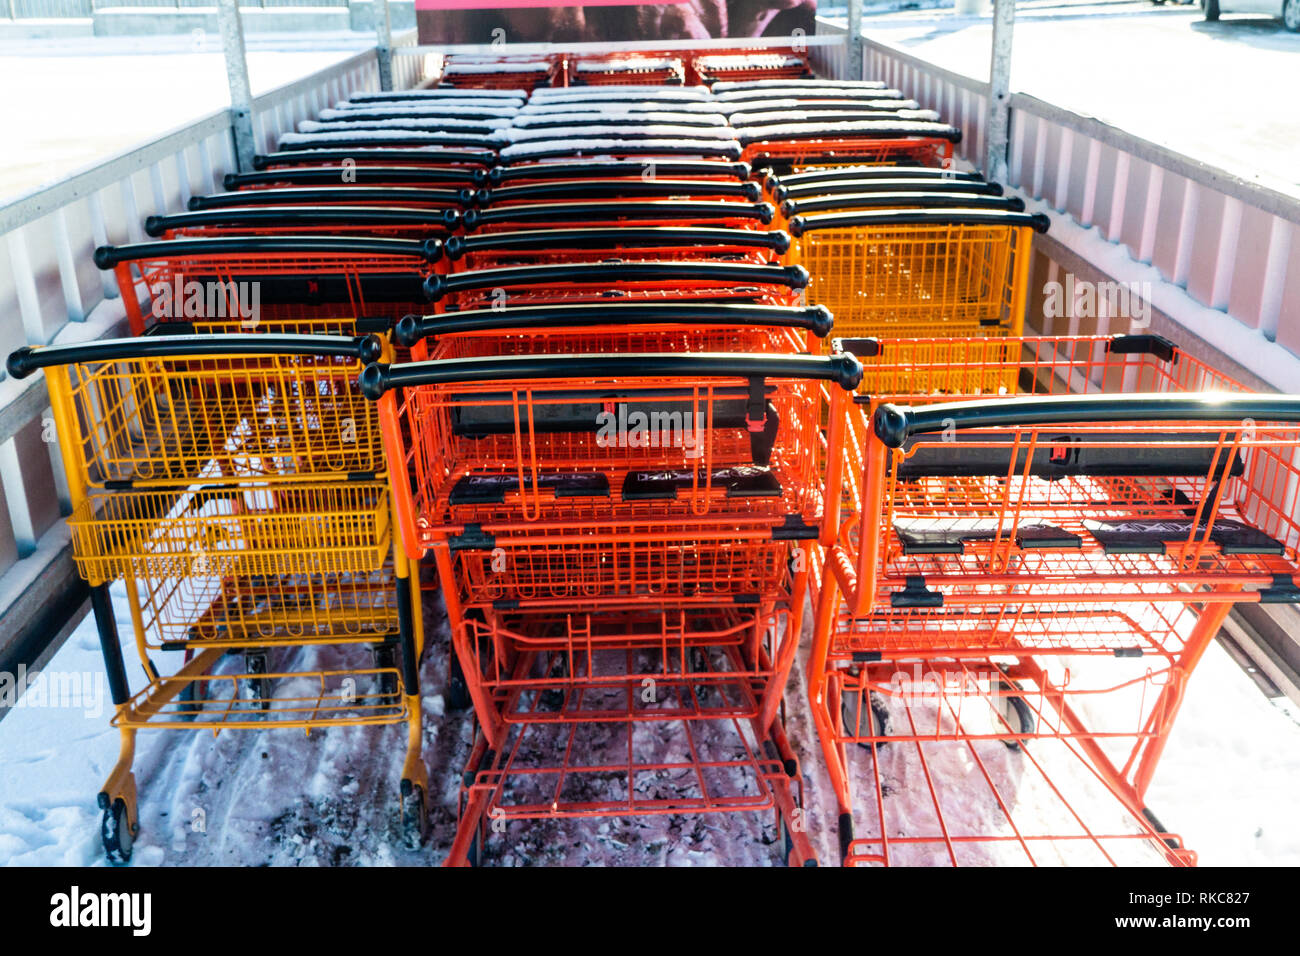 Supermarket mall shopping cart outside in snow - Stock Image